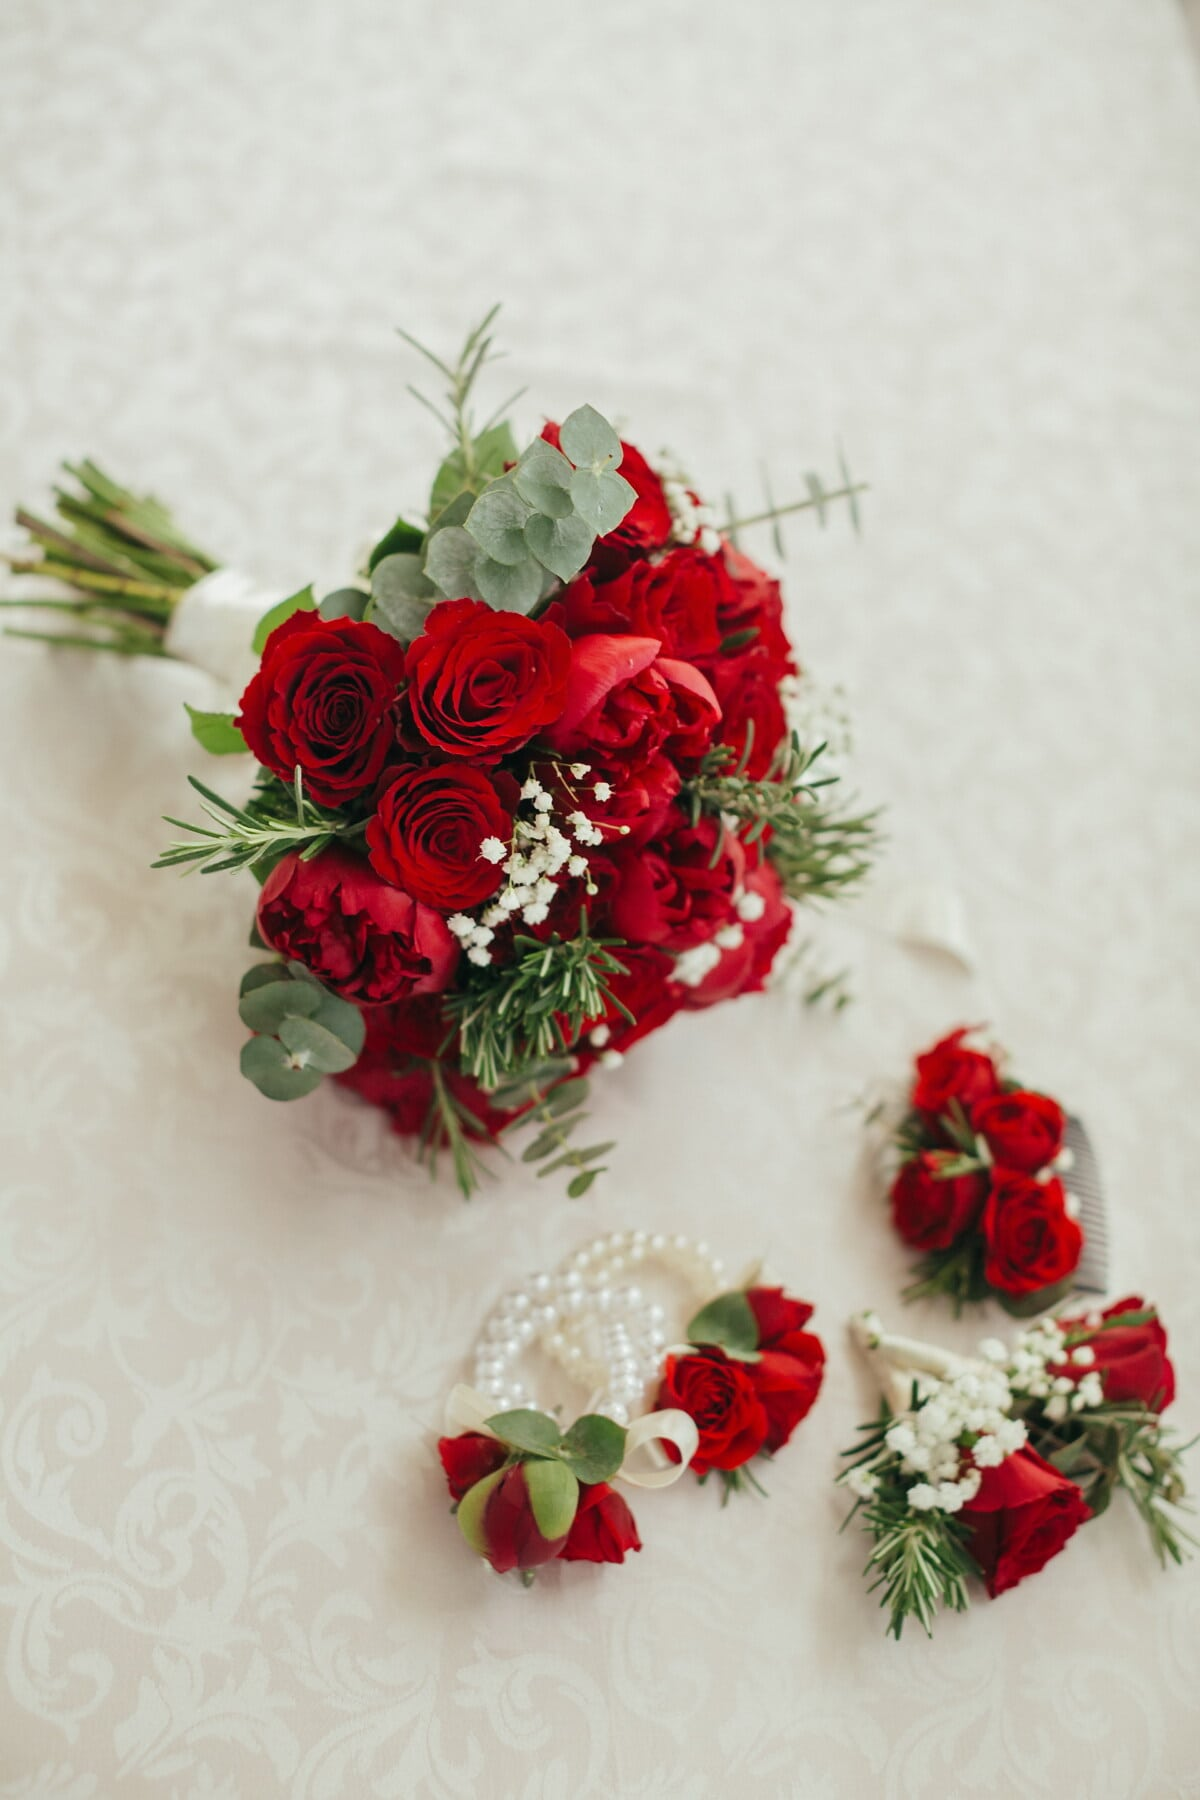 love, passion, romance, bouquet, gifts, roses, Valentine's day, red, decoration, arrangement